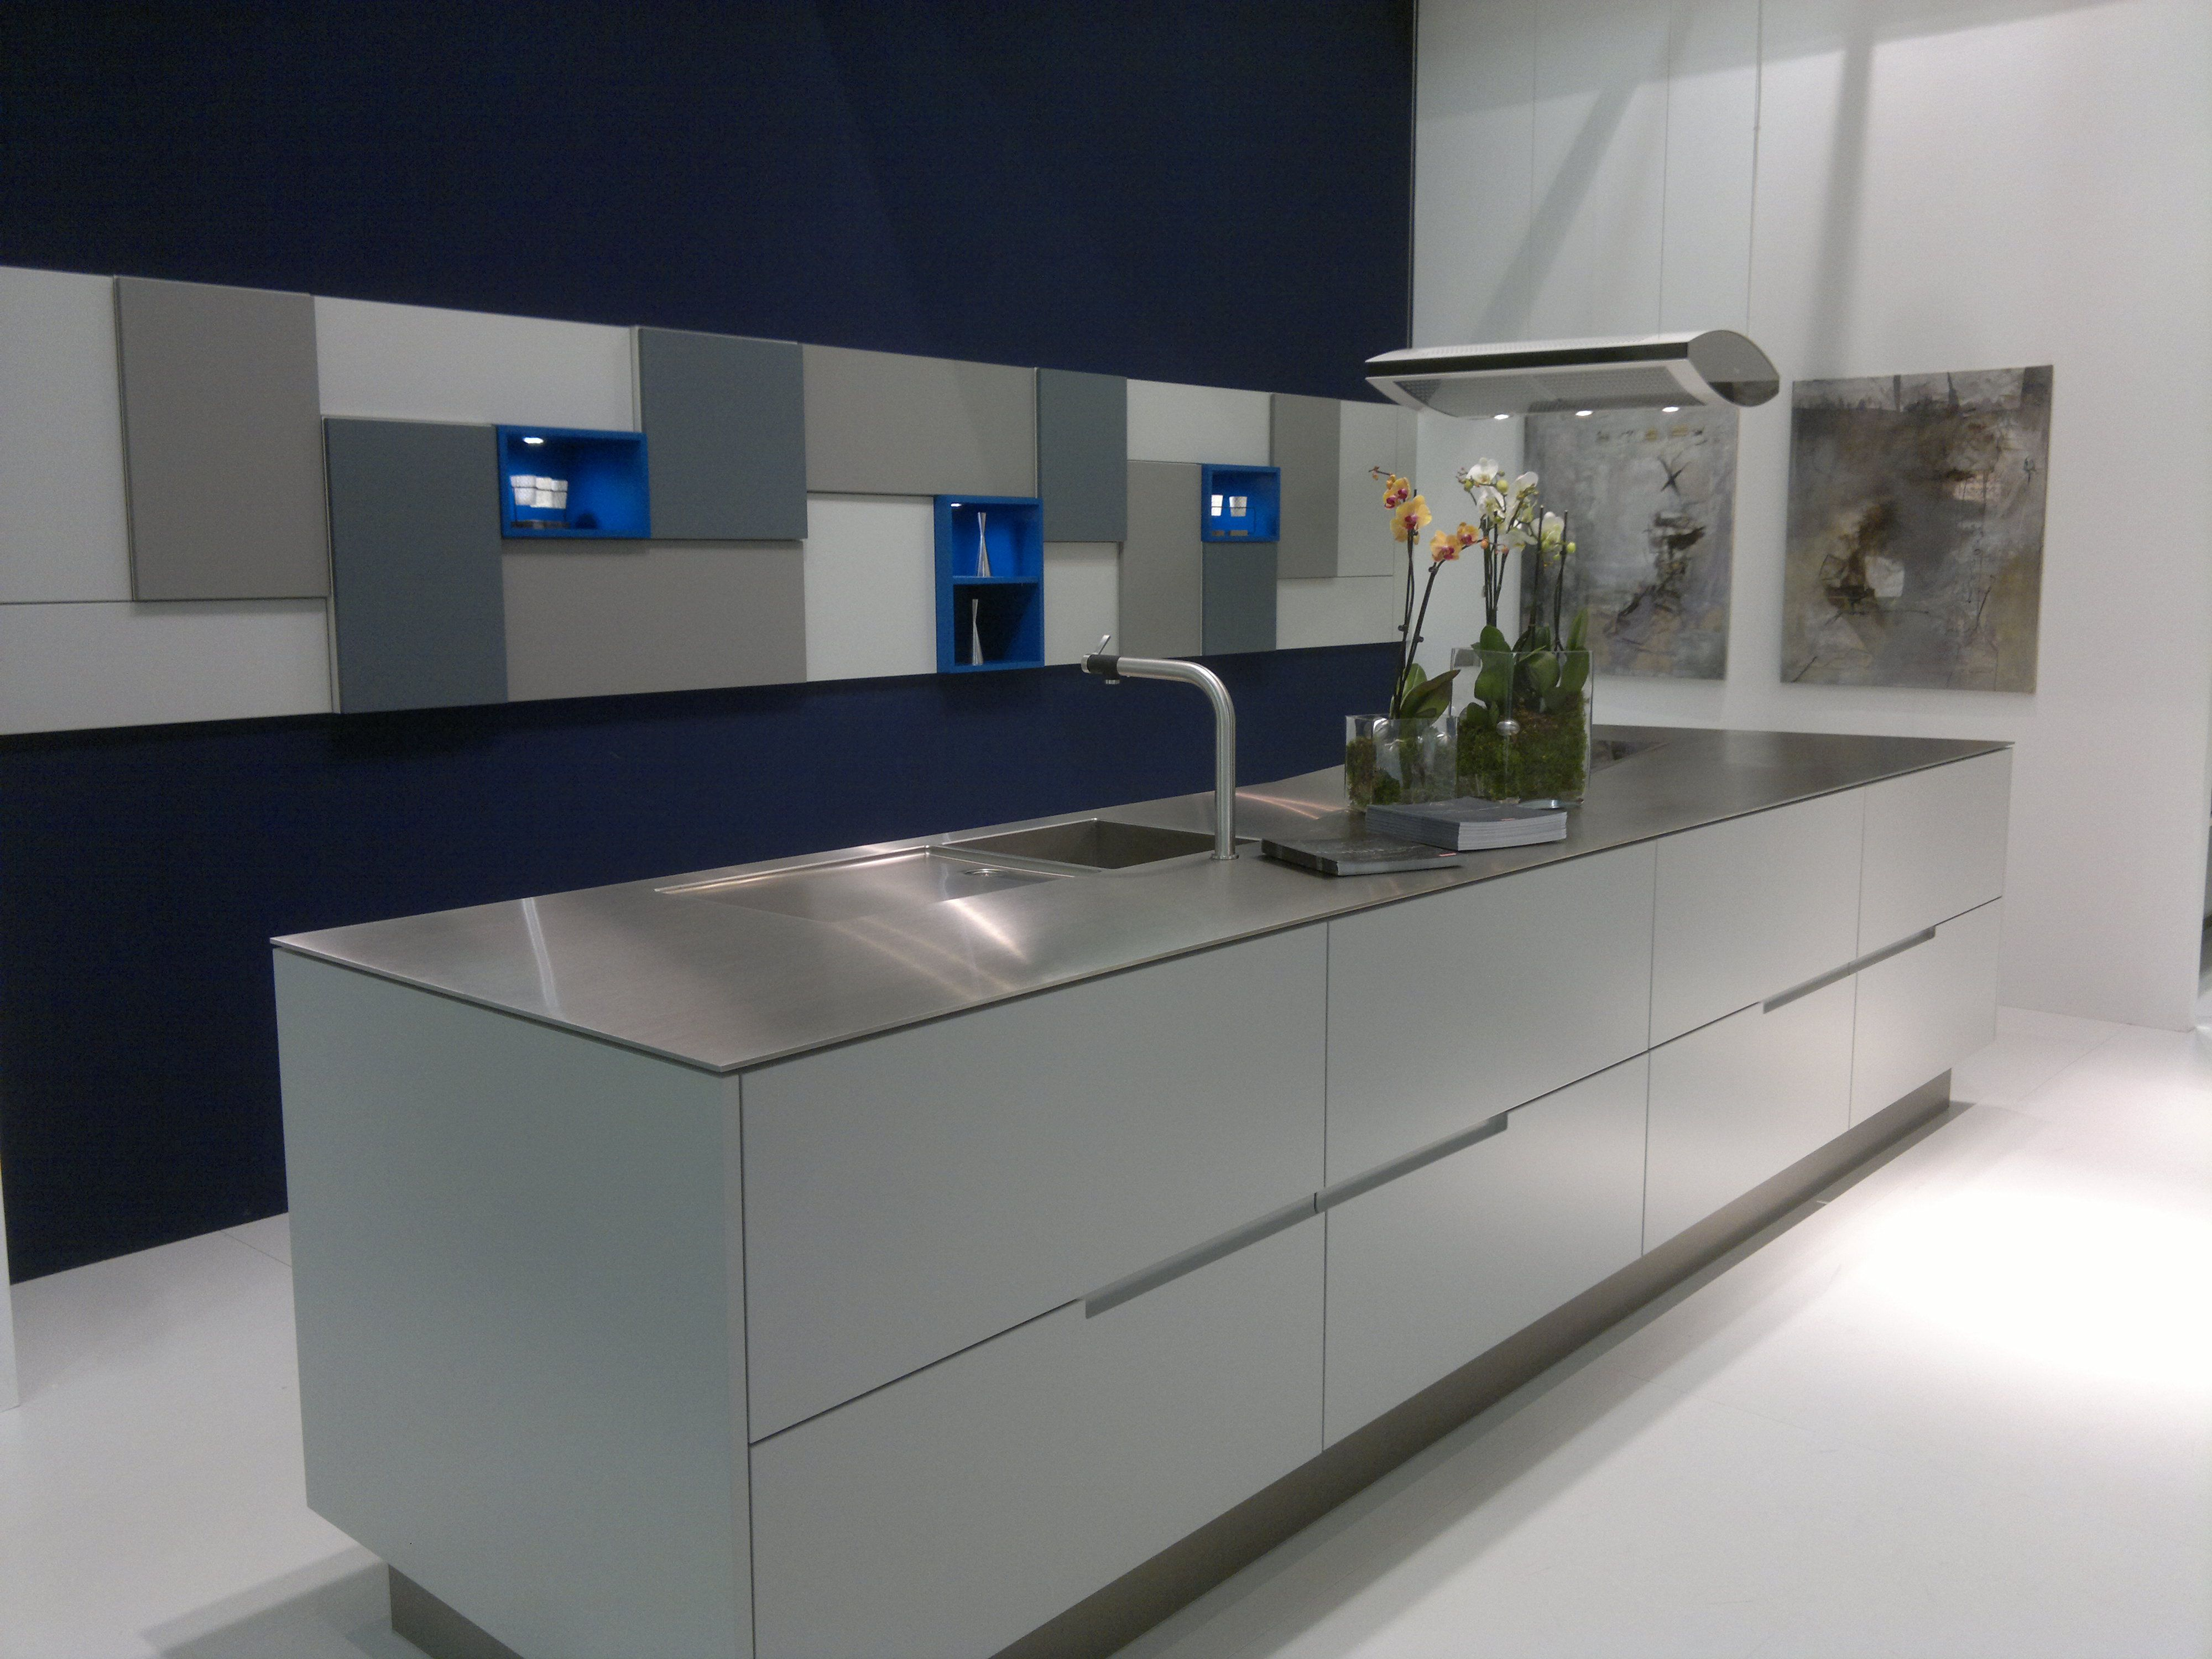 Rempp Küche Pin By Küchen Kitchens On Rempp Kitchens Pinterest